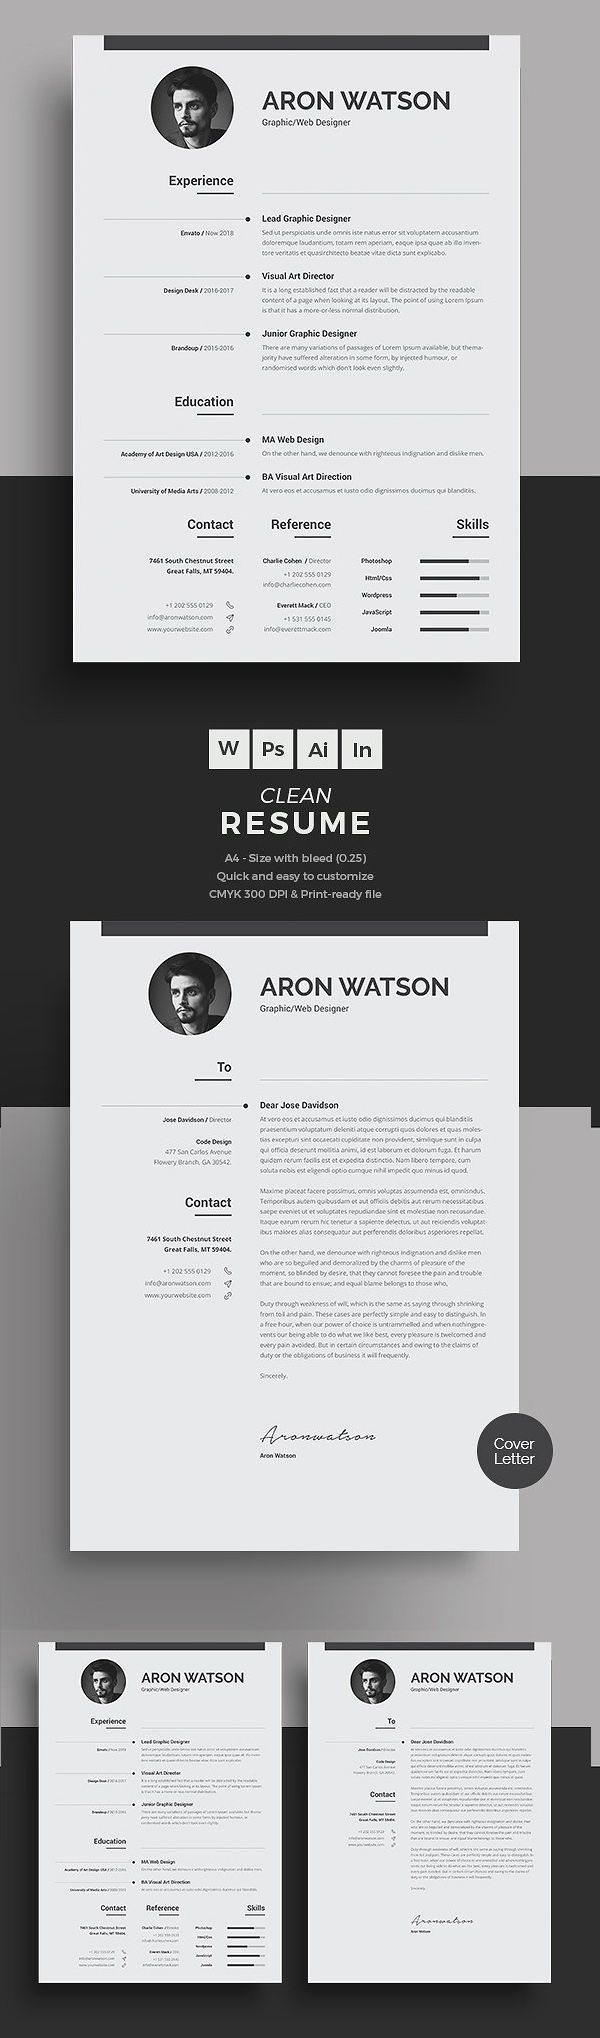 new professional cv resume templates with cover letter design graphic design junction